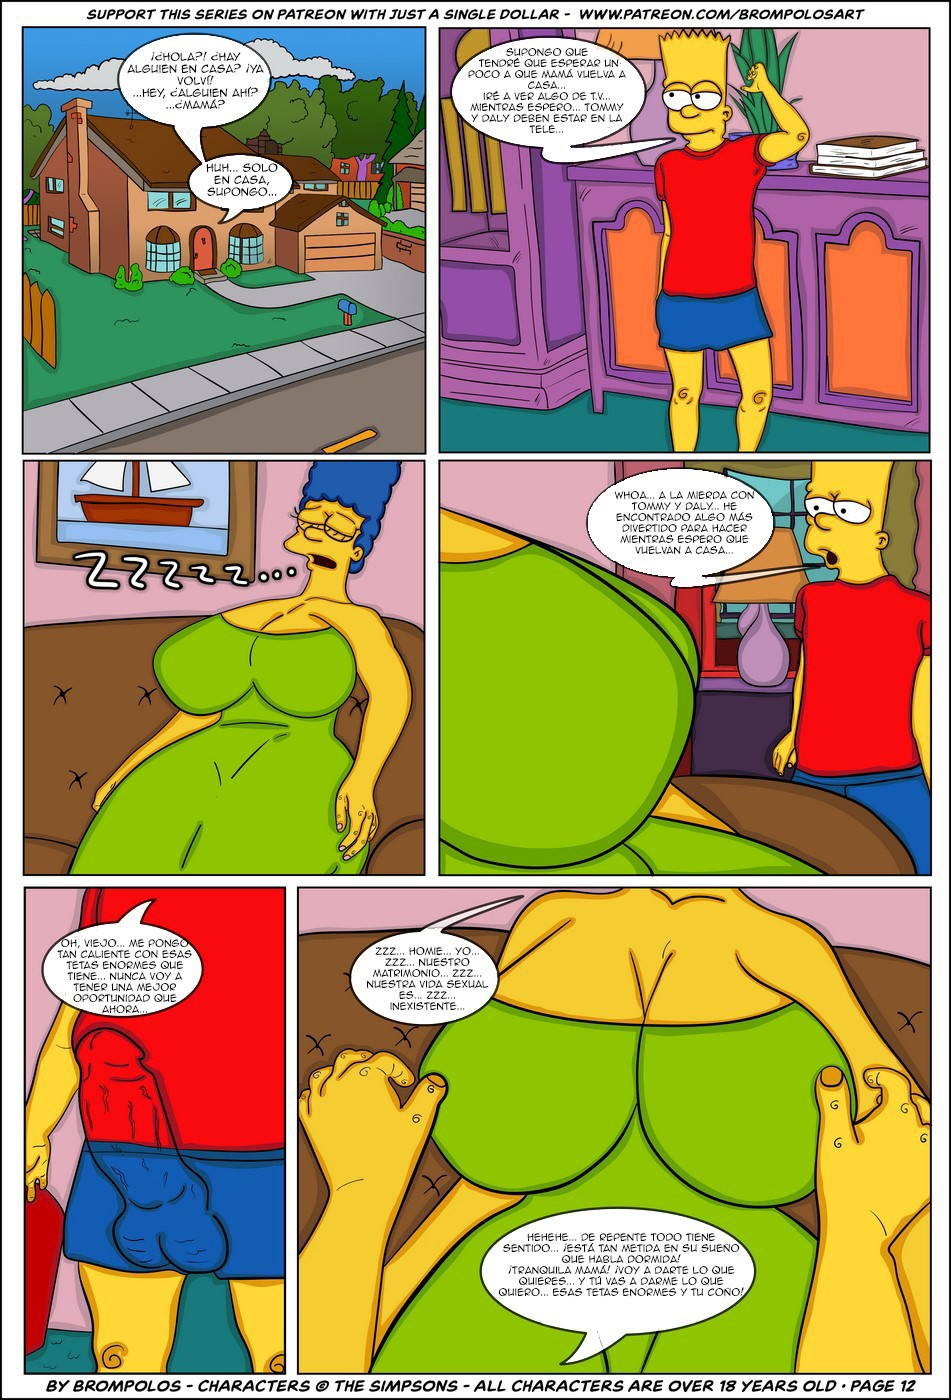 The-Simpsons-are-The-Sexenteins-15.jpg